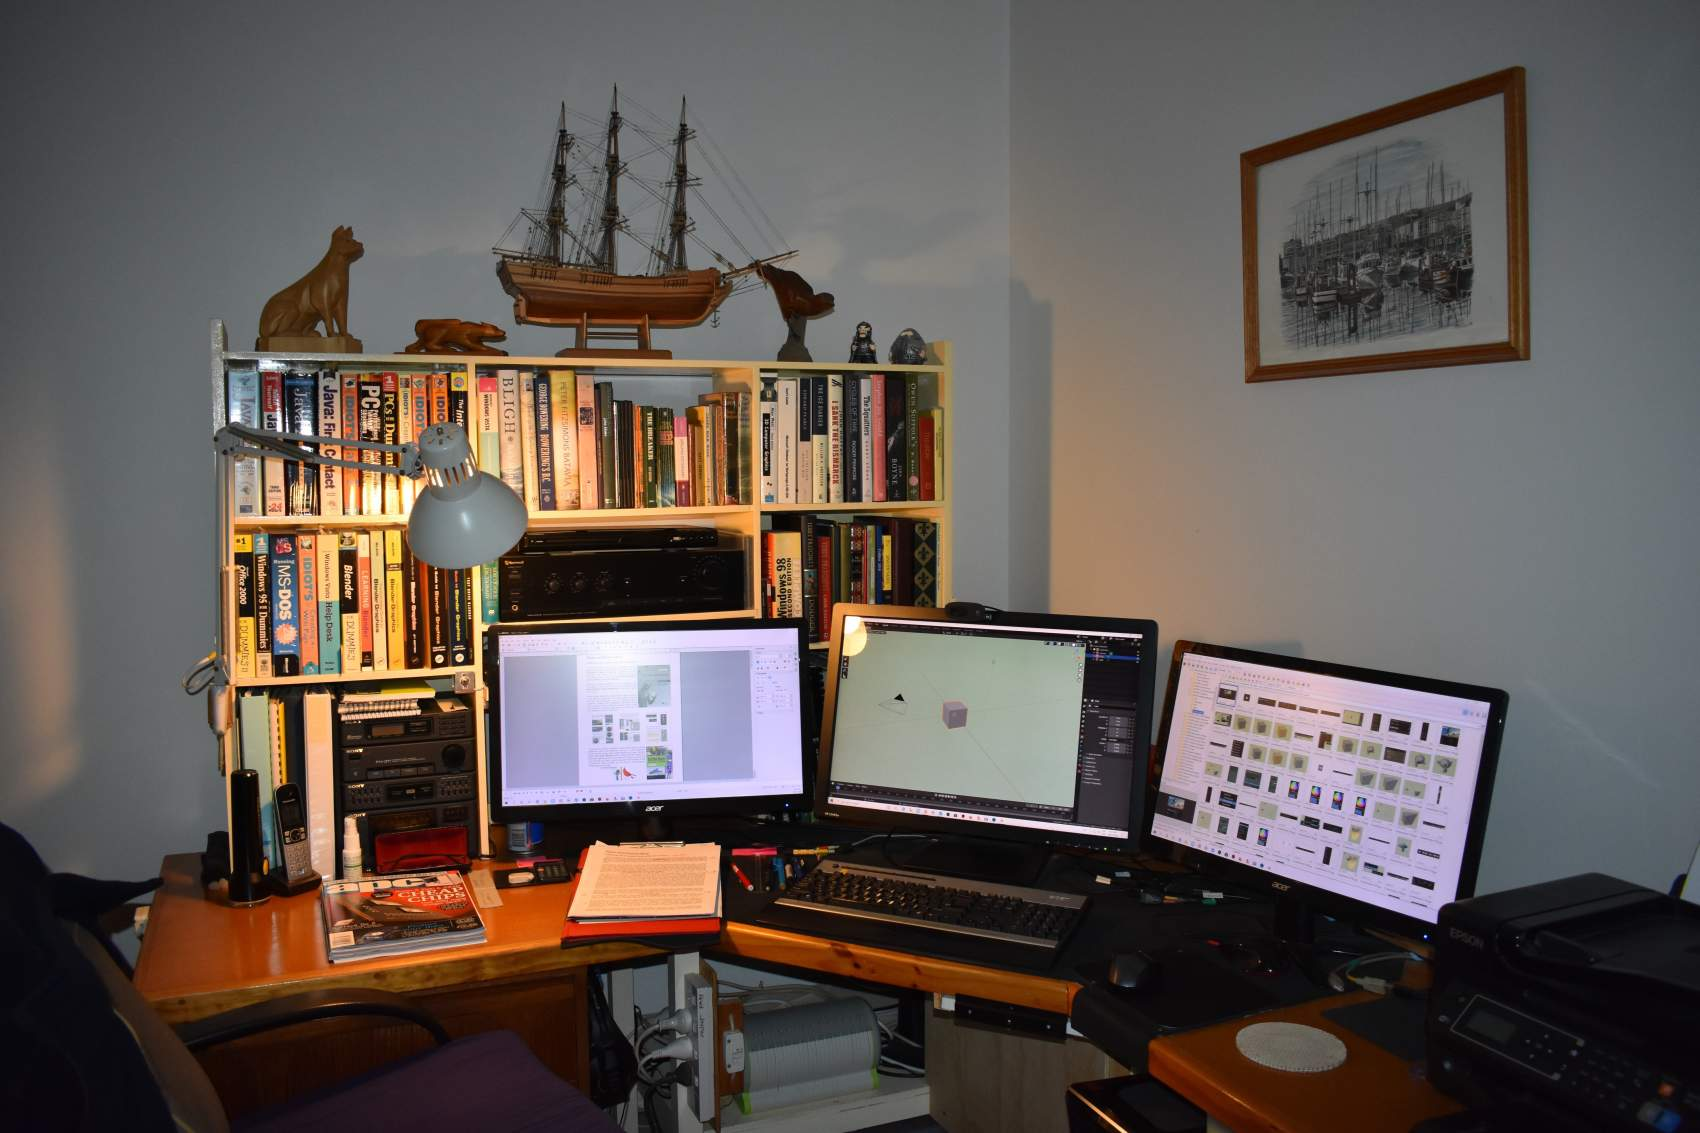 Computer Modeling and Animation programming workplace setup